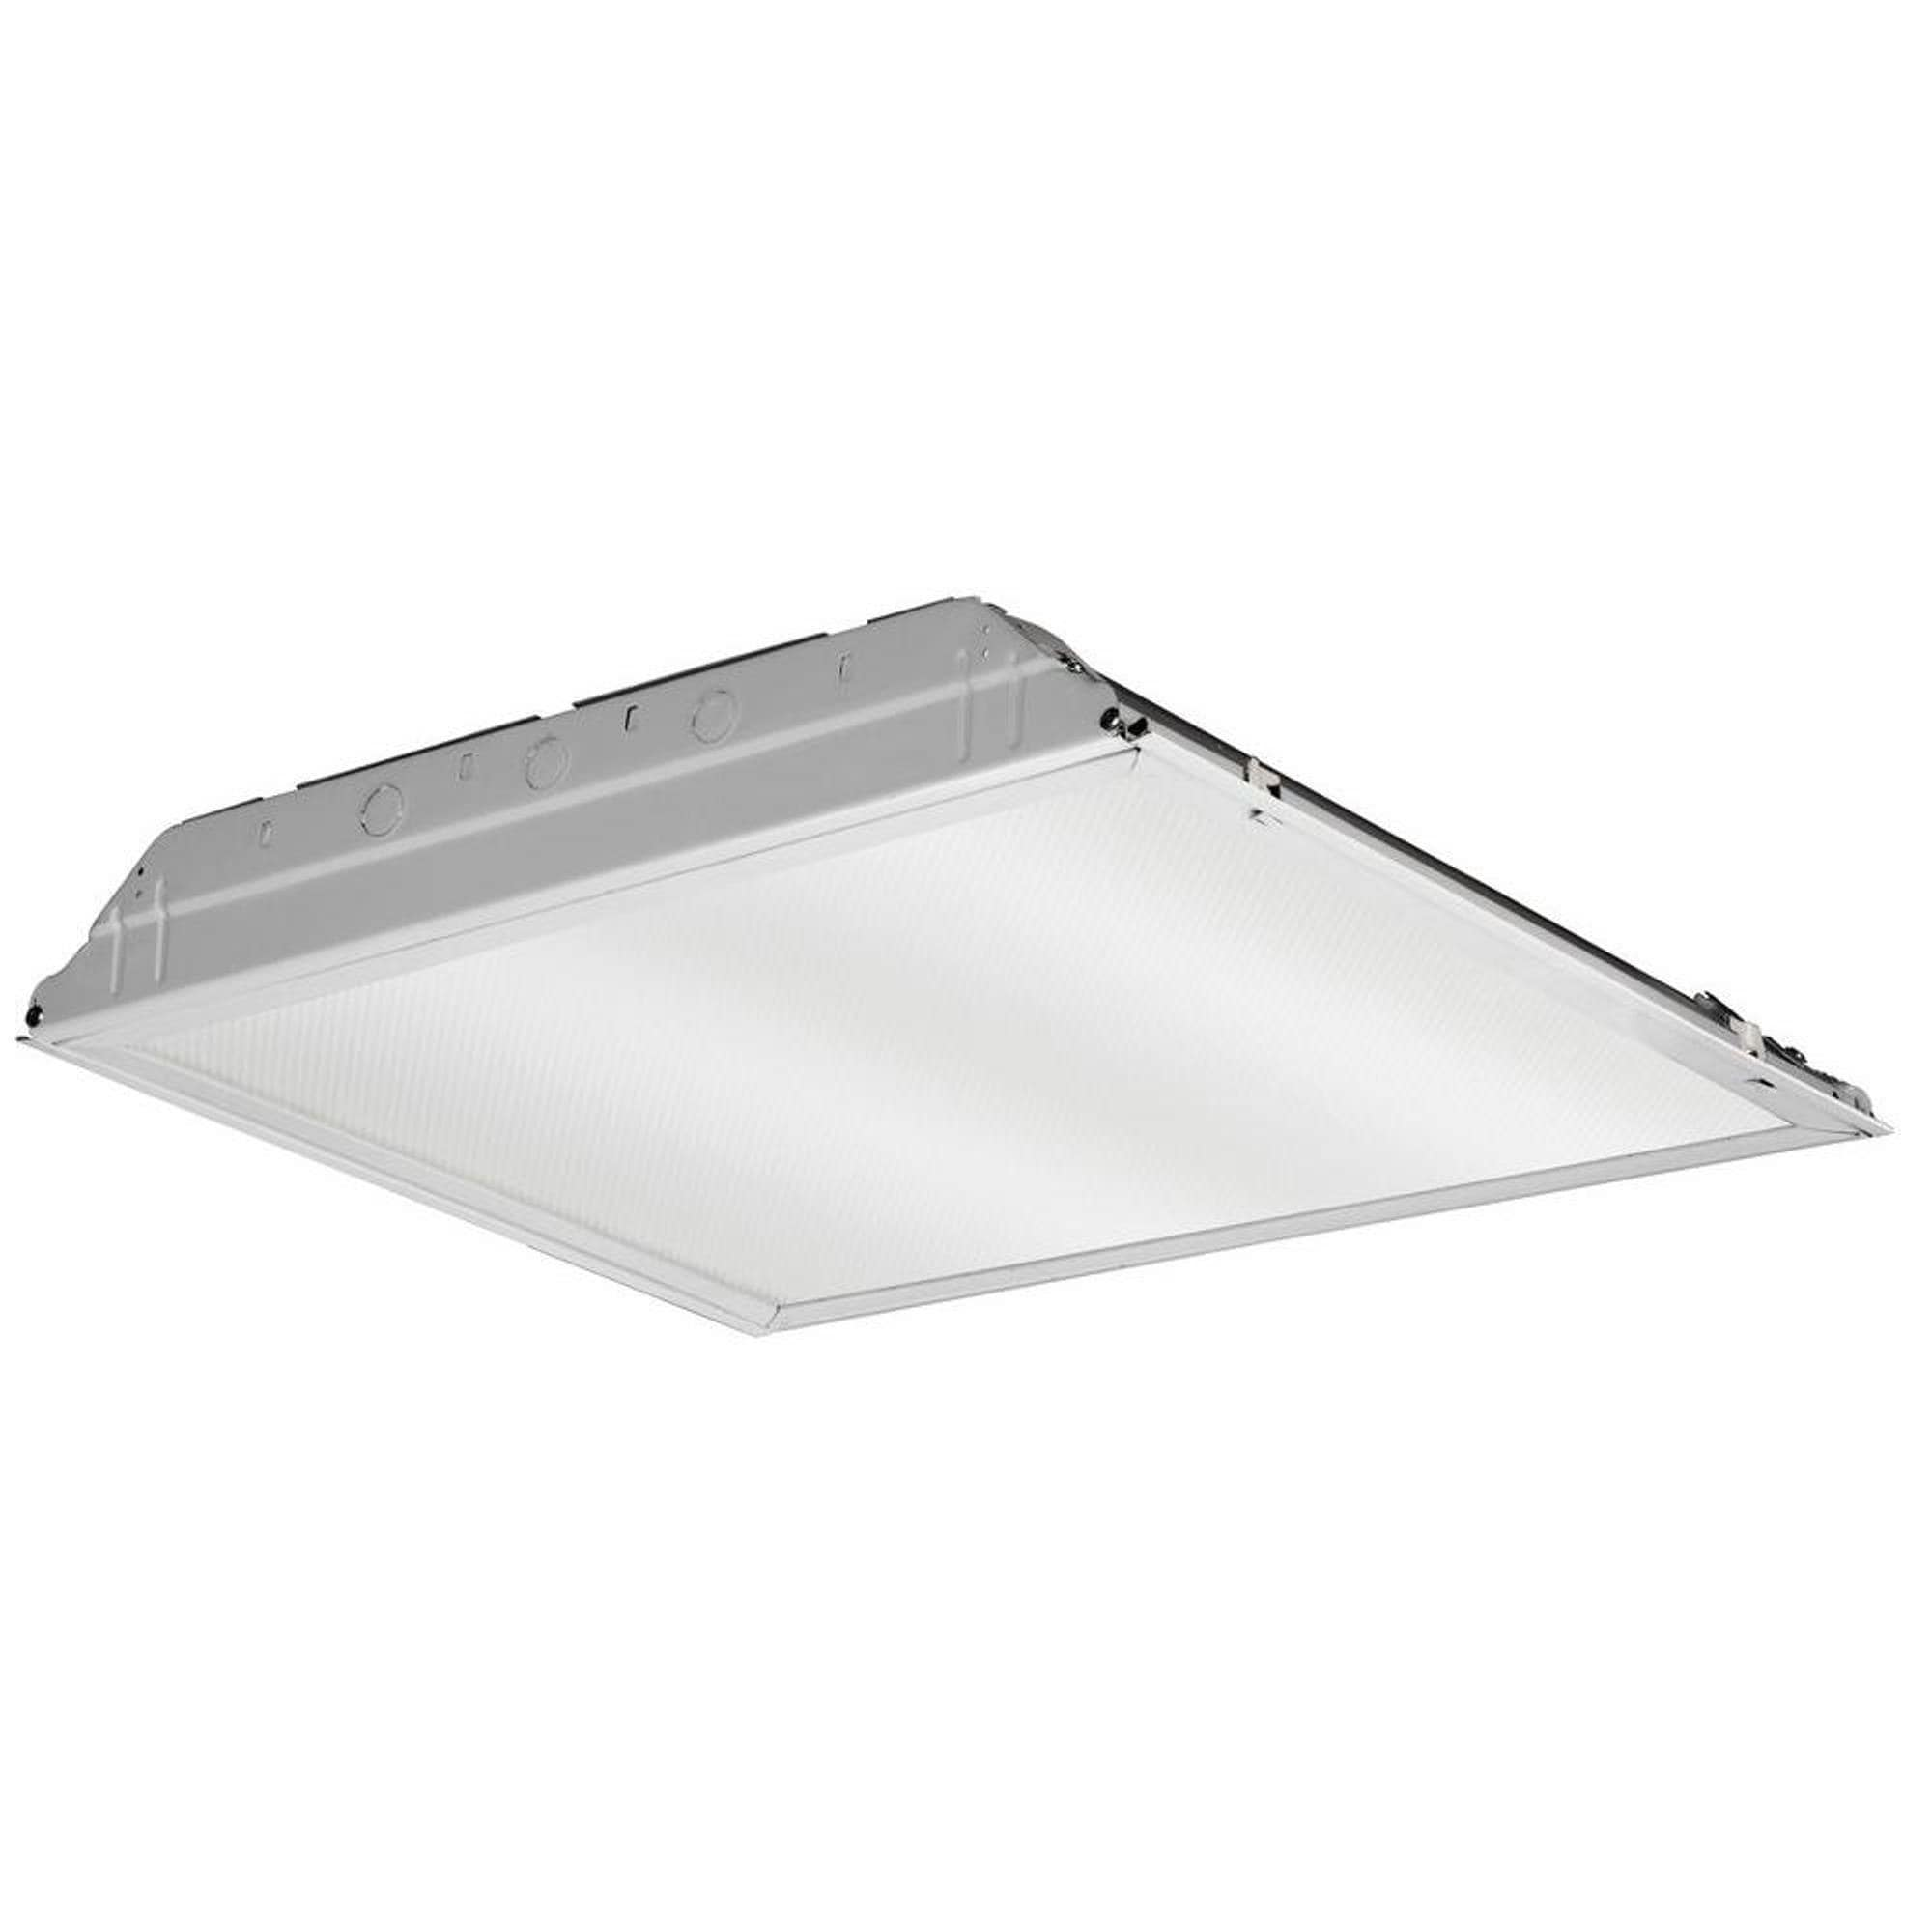 Lithonia Lighting White Aluminum 2 x 2 Lay-In Troffer wit...